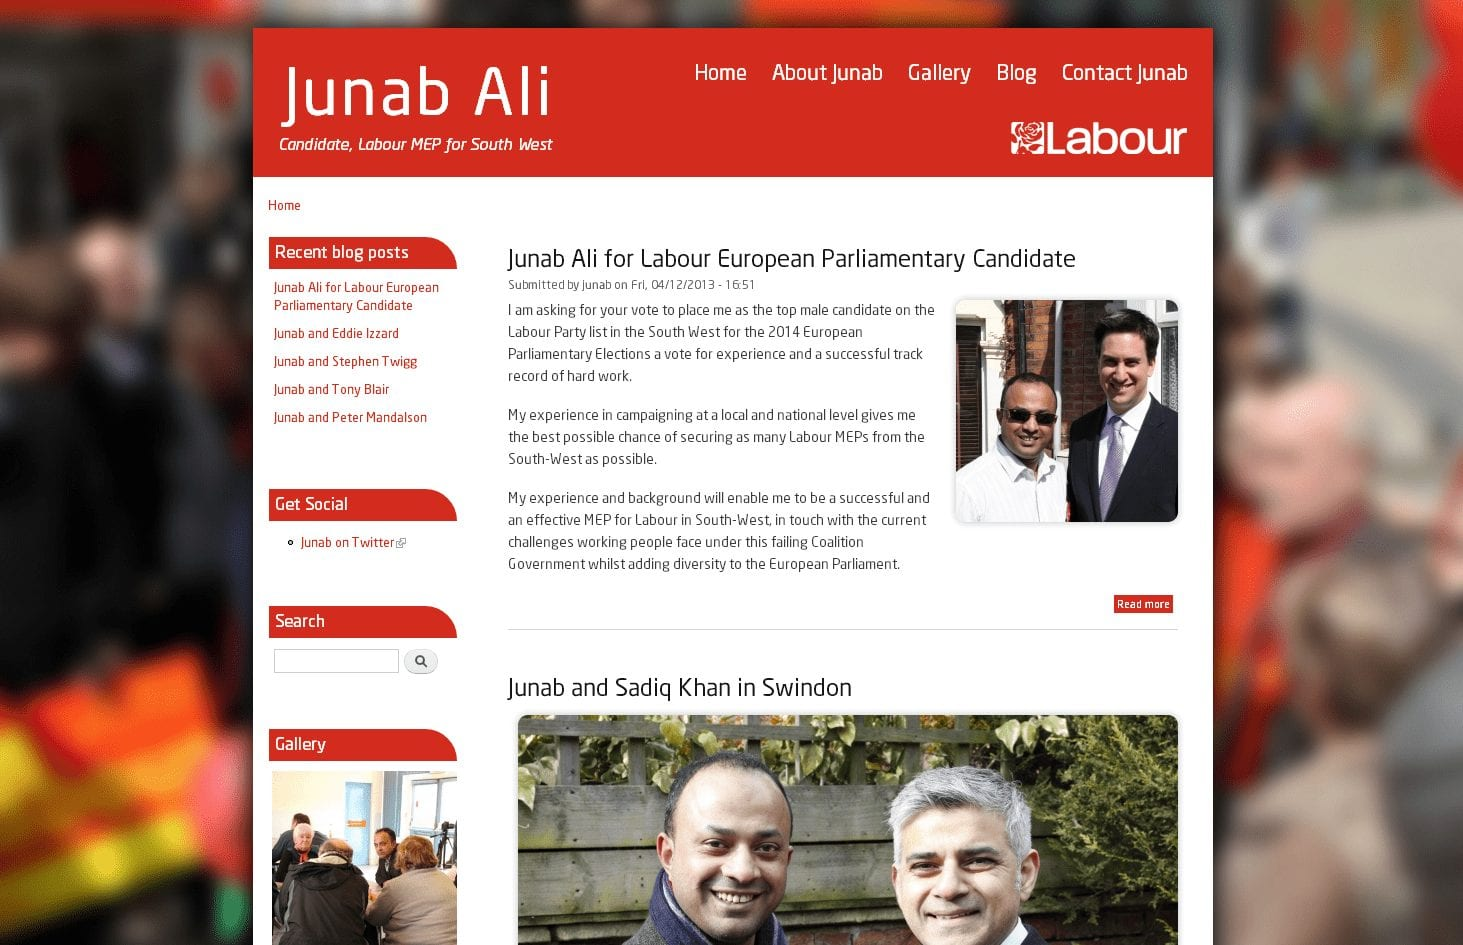 campaign-website-for-junab-ali-labour-candidate-for-mep.png